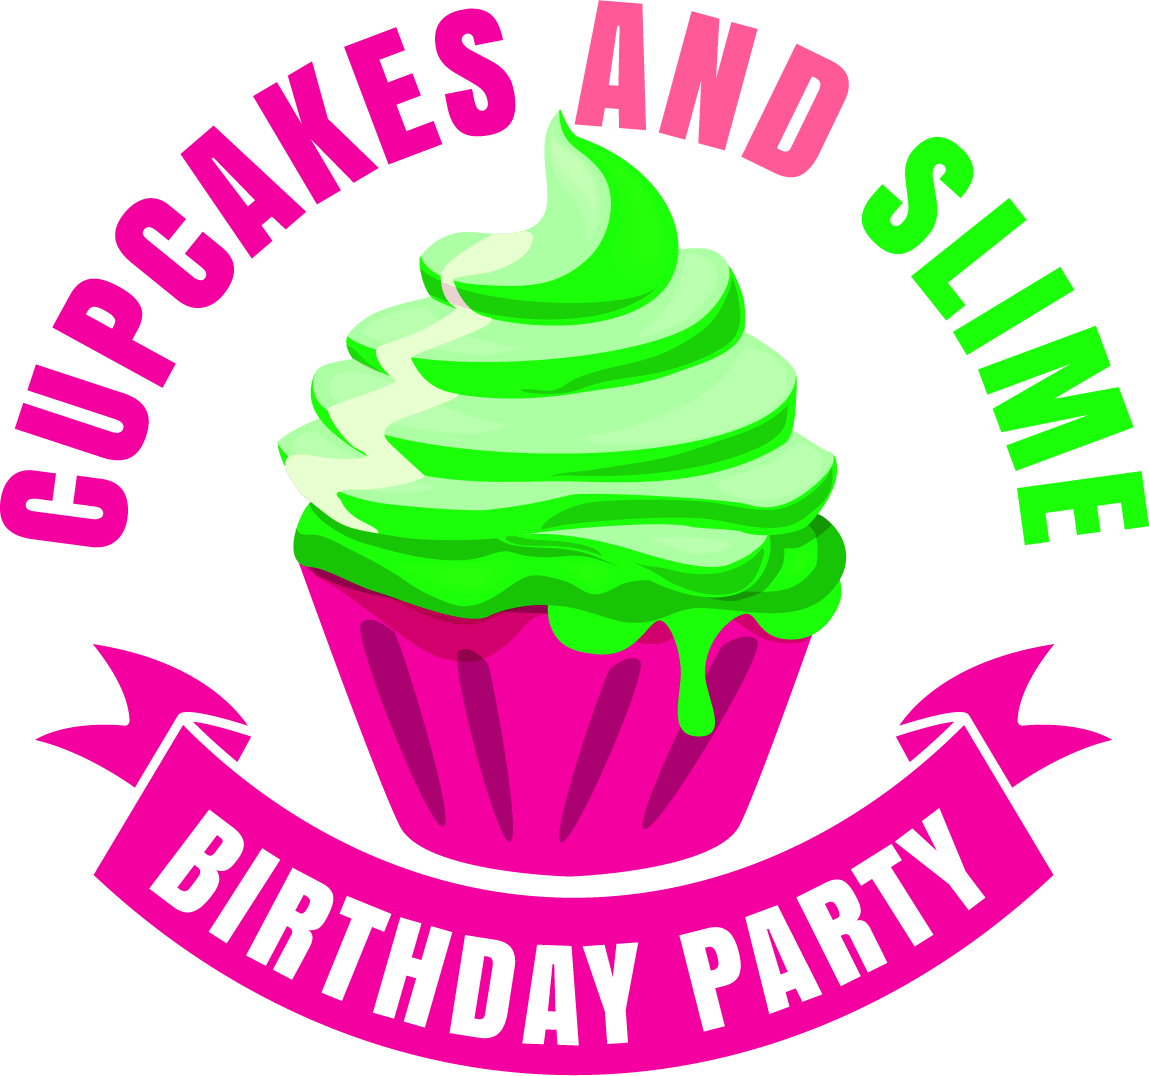 Cupcakes and Slime Birthday Party, LLC